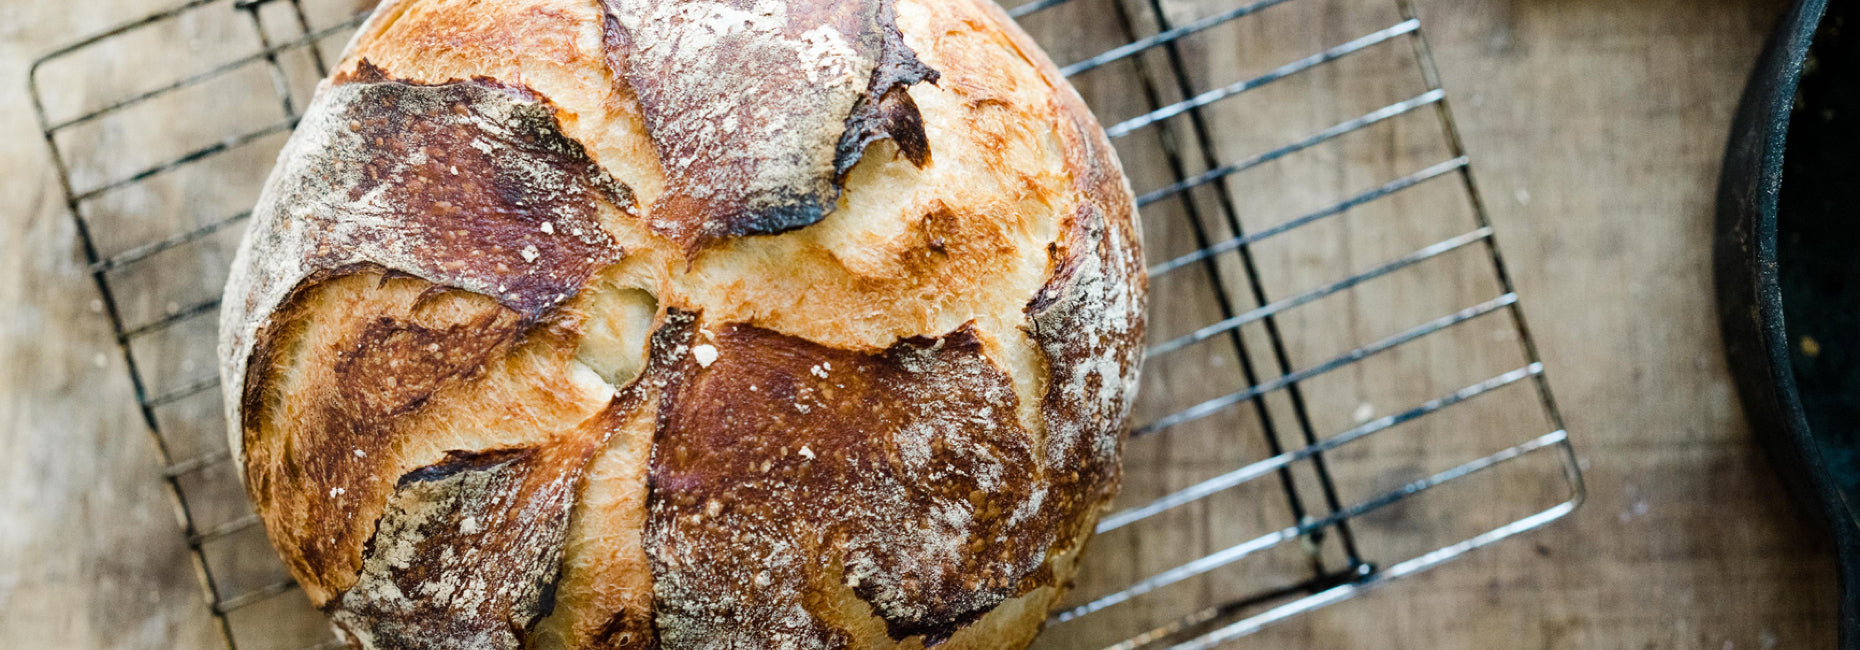 Feed your gut with sourdough